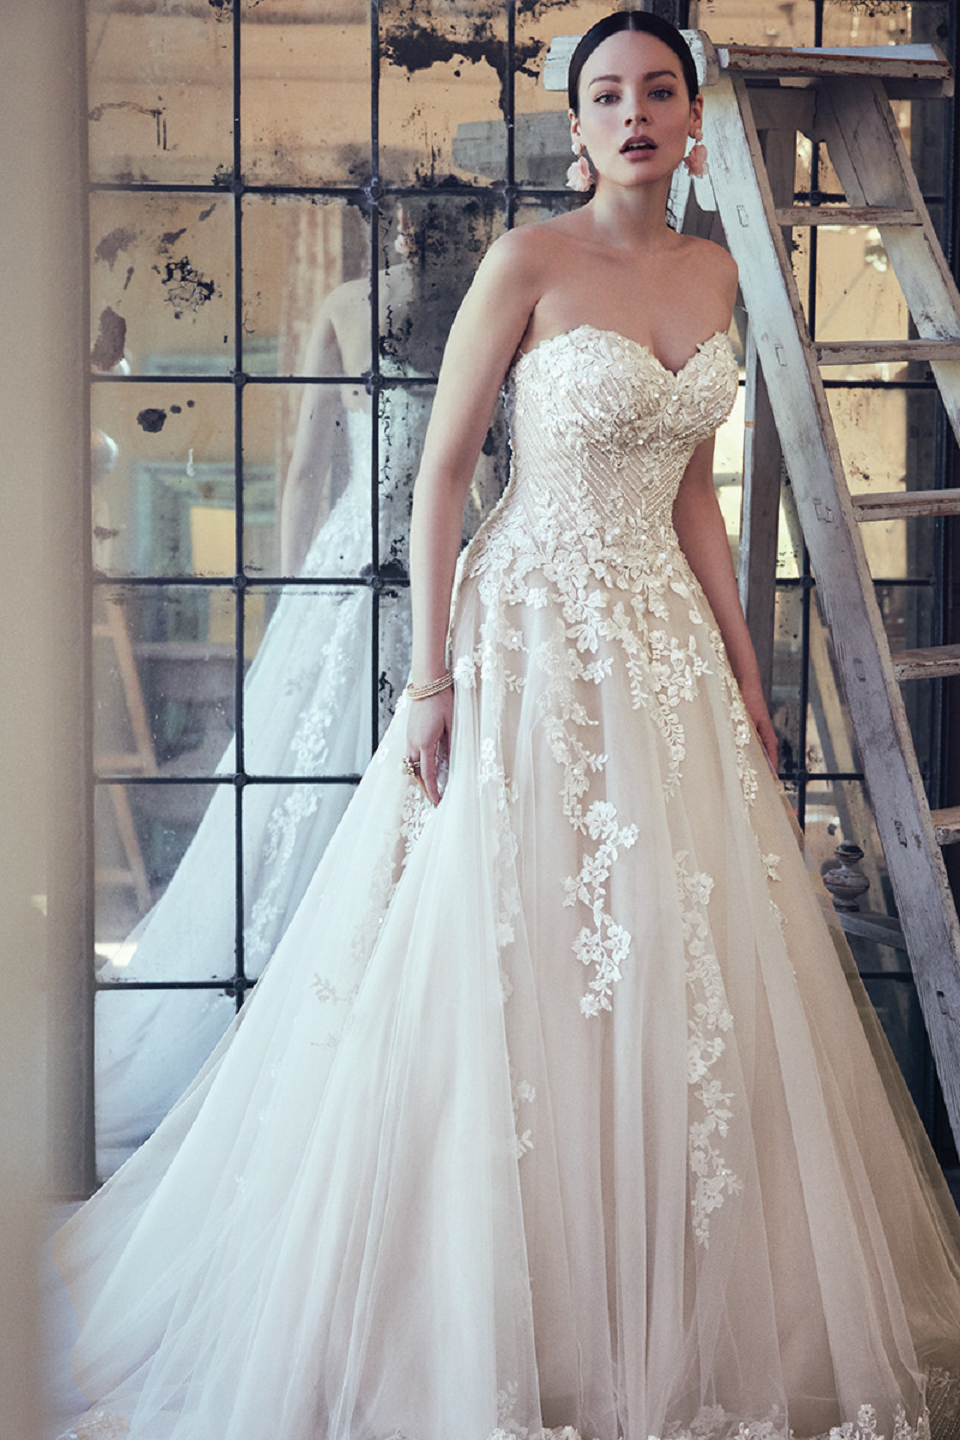 Elegant A-Line Bridal Dress with Sweetheart Neckline and Embilleshed Rhinestones and Beads